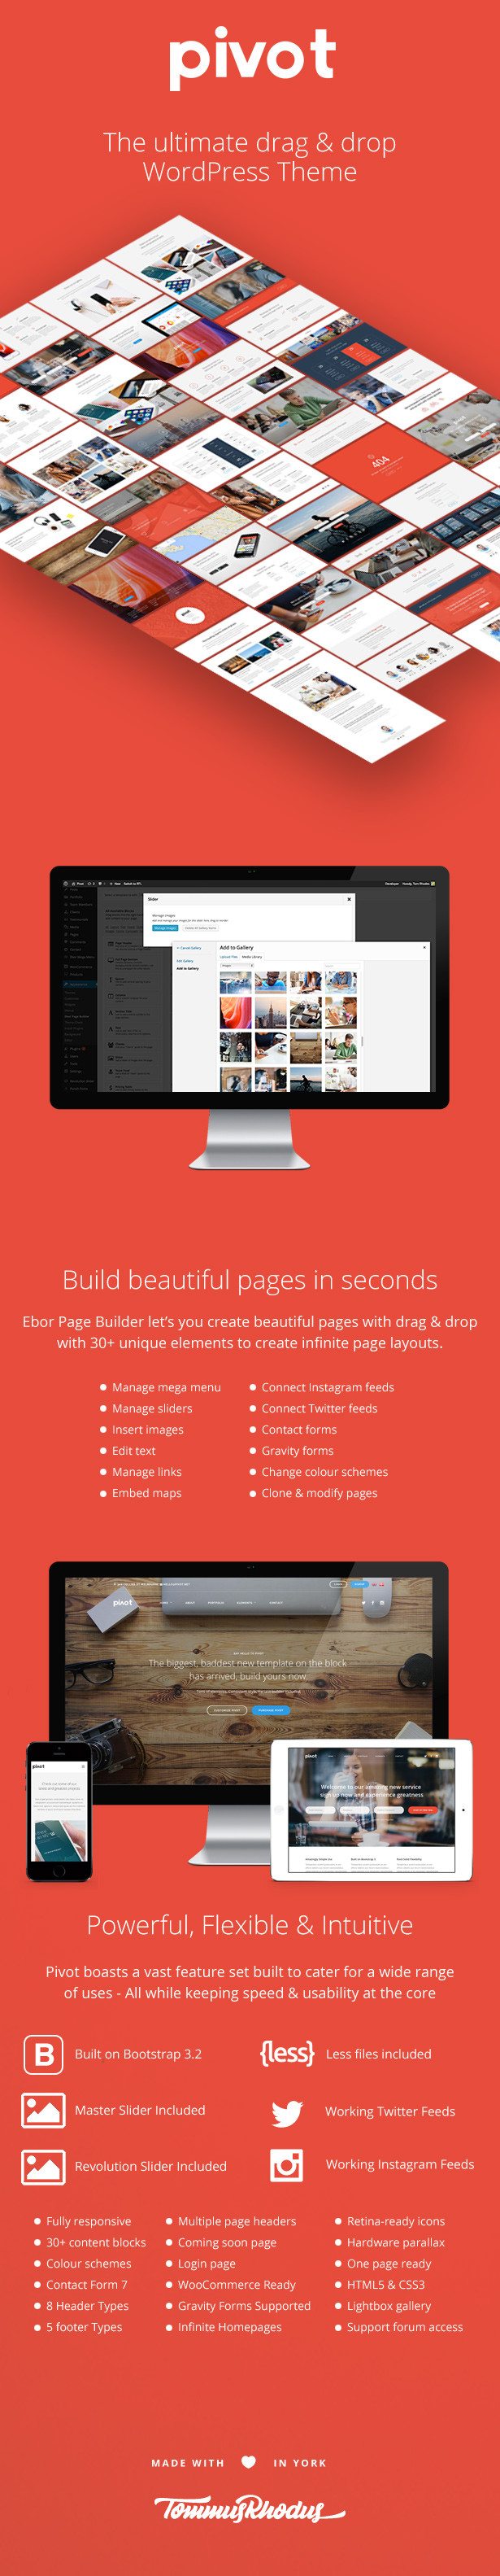 Pivot | Responsive Multipurpose WordPress Theme by tommusrhodus